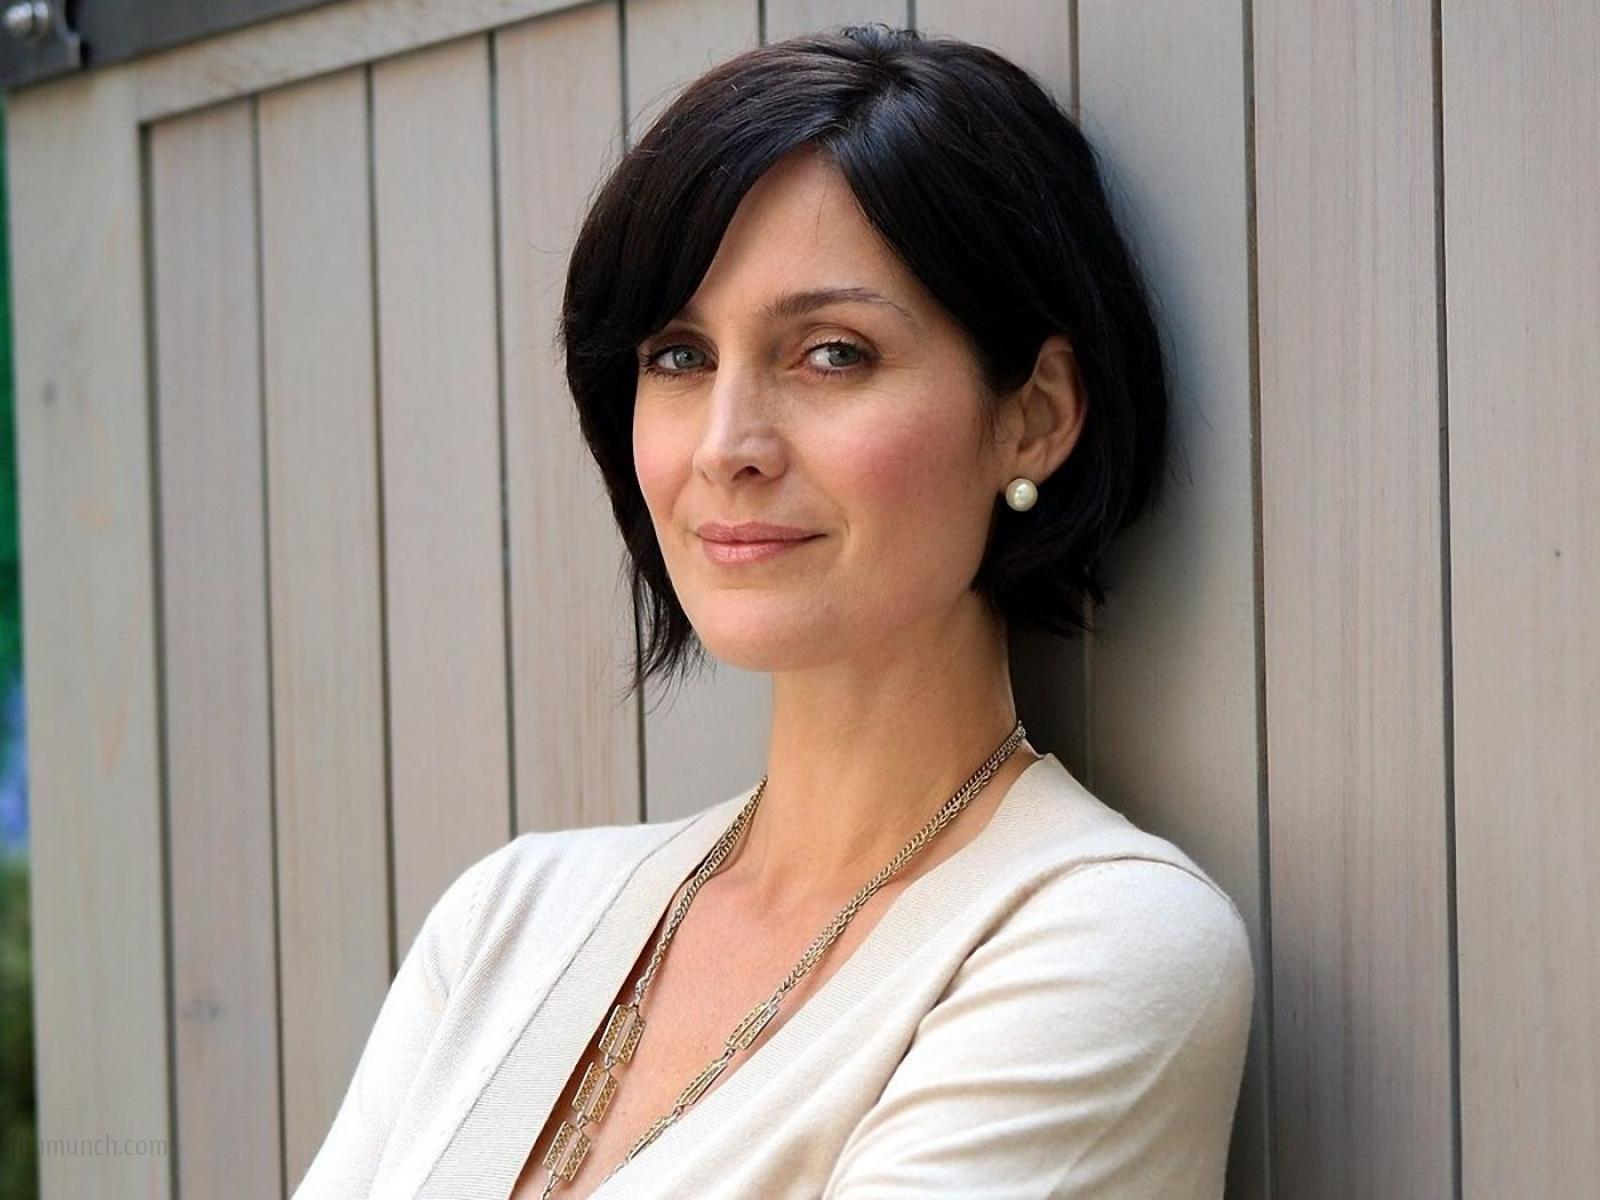 Carrie moss mp4 galleries 55